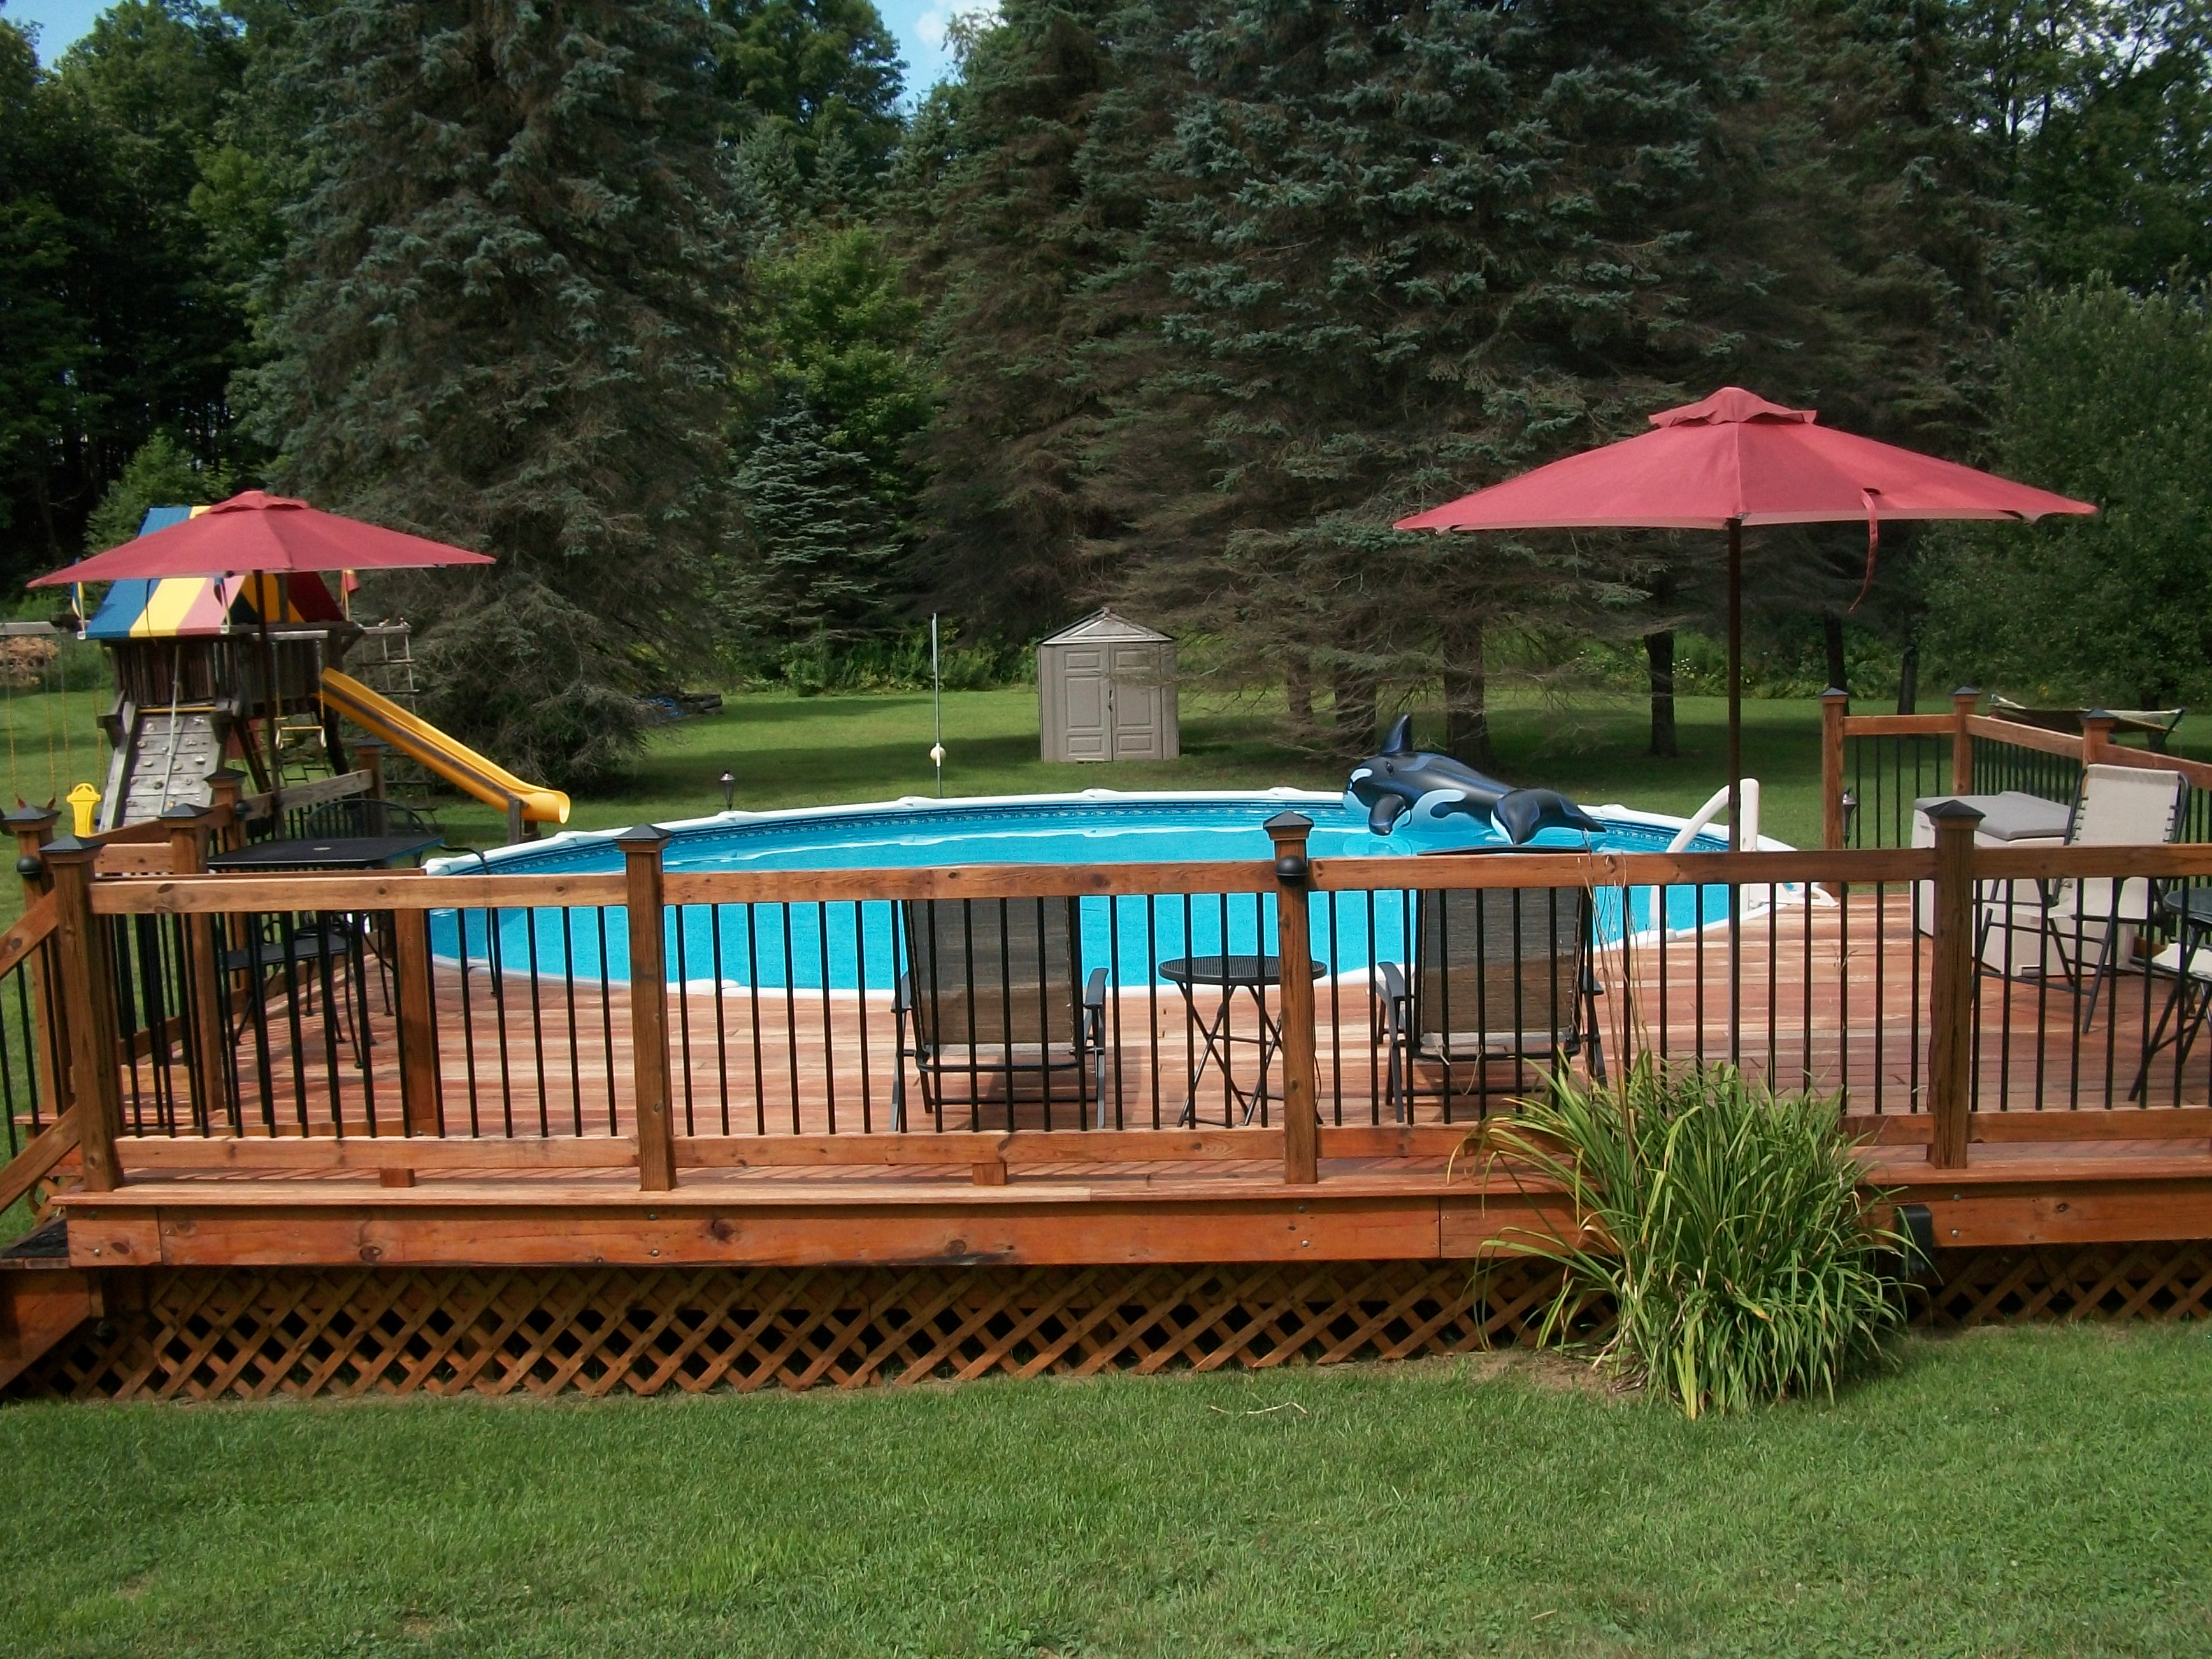 Outdoor Living | Patriot Construction of Upstate New York ... on Patriot Outdoor Living id=12327